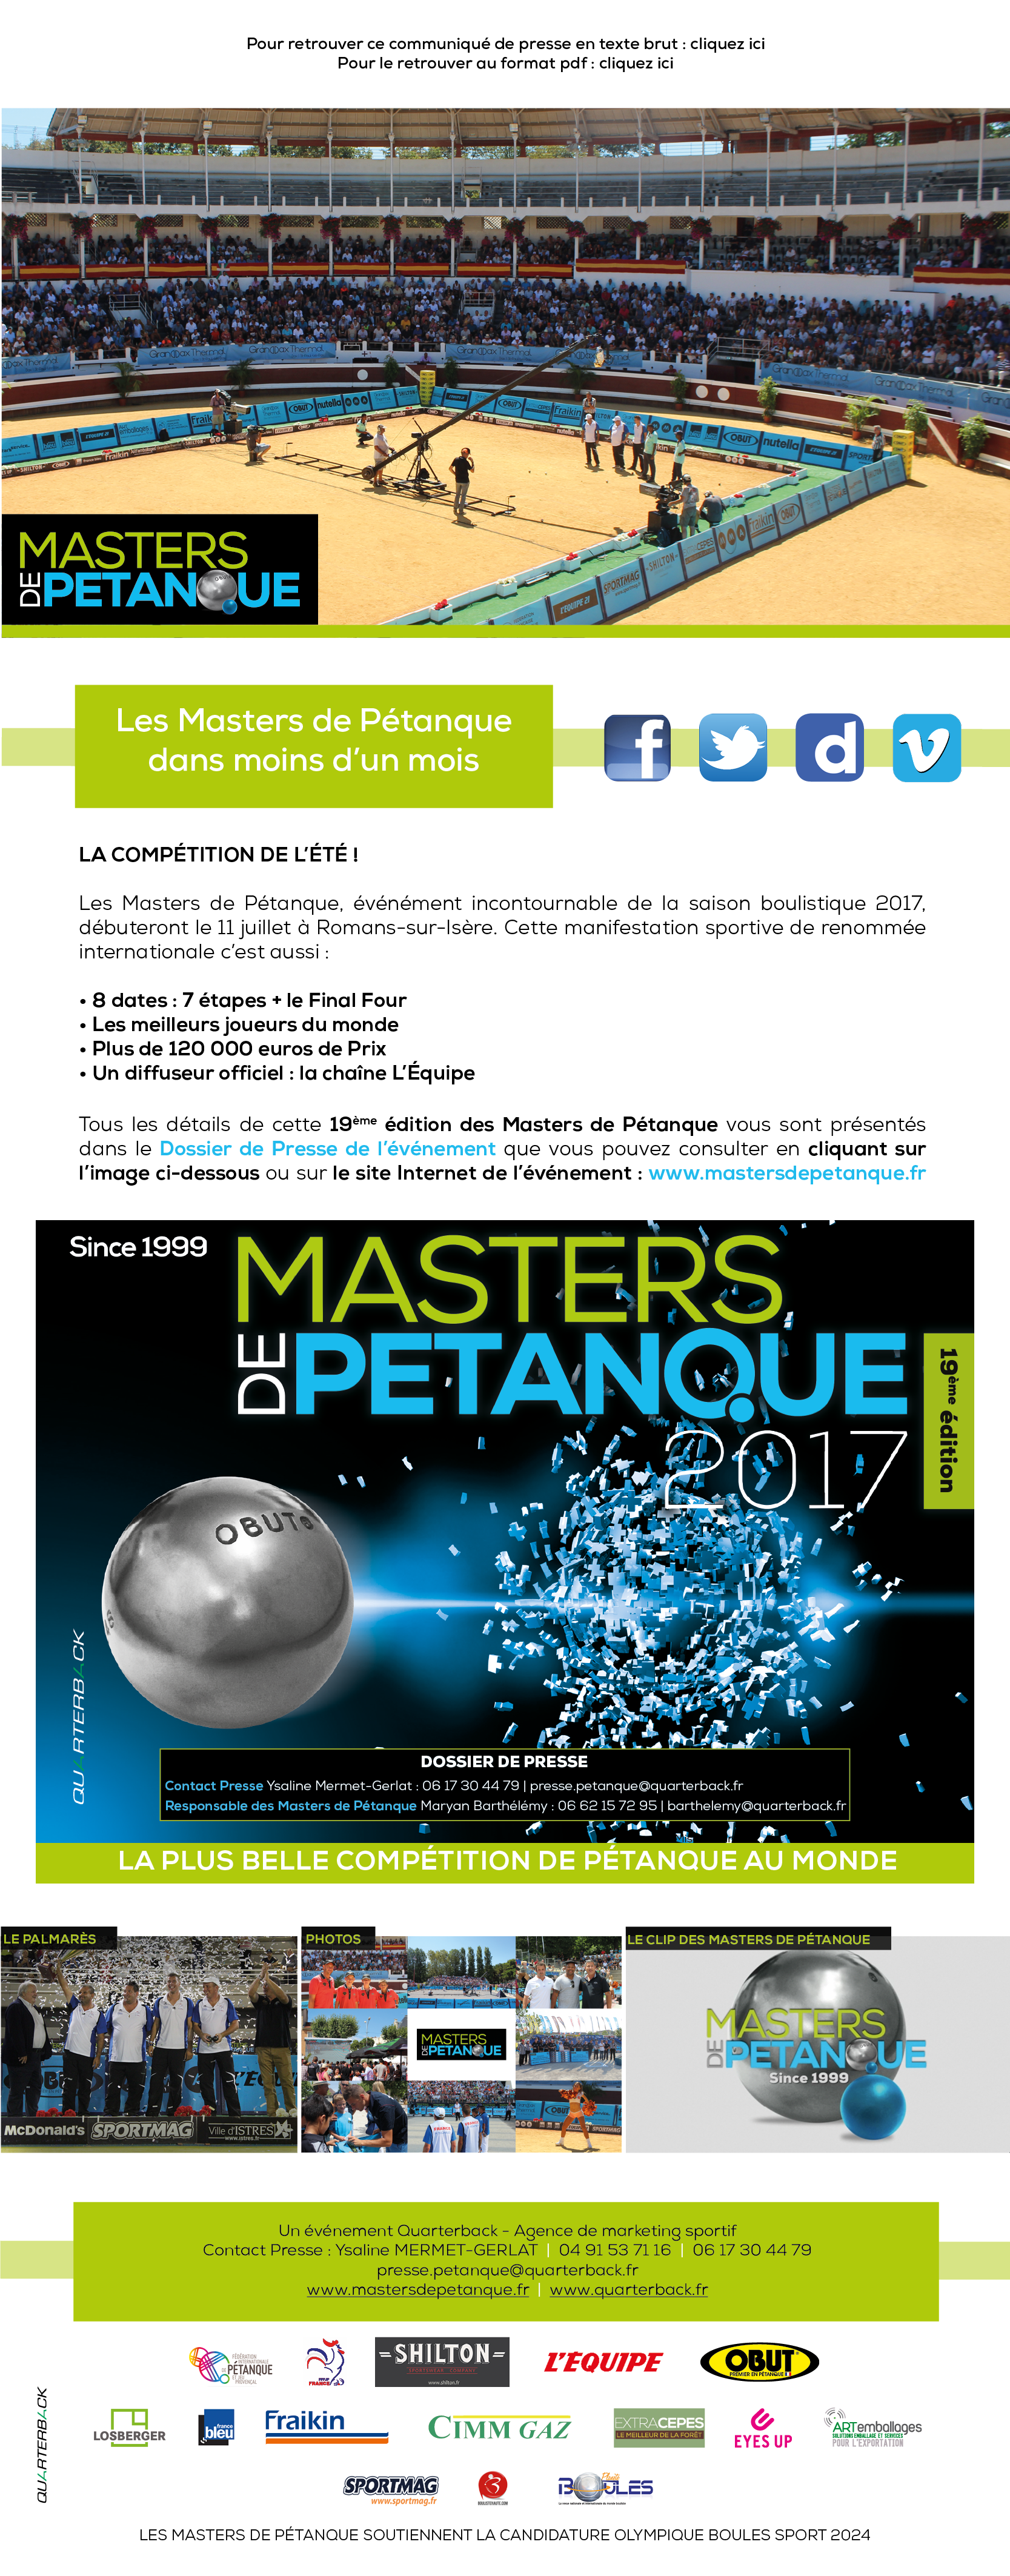 MASTERSDEPETANQUE2017-ANNONCE-DDP